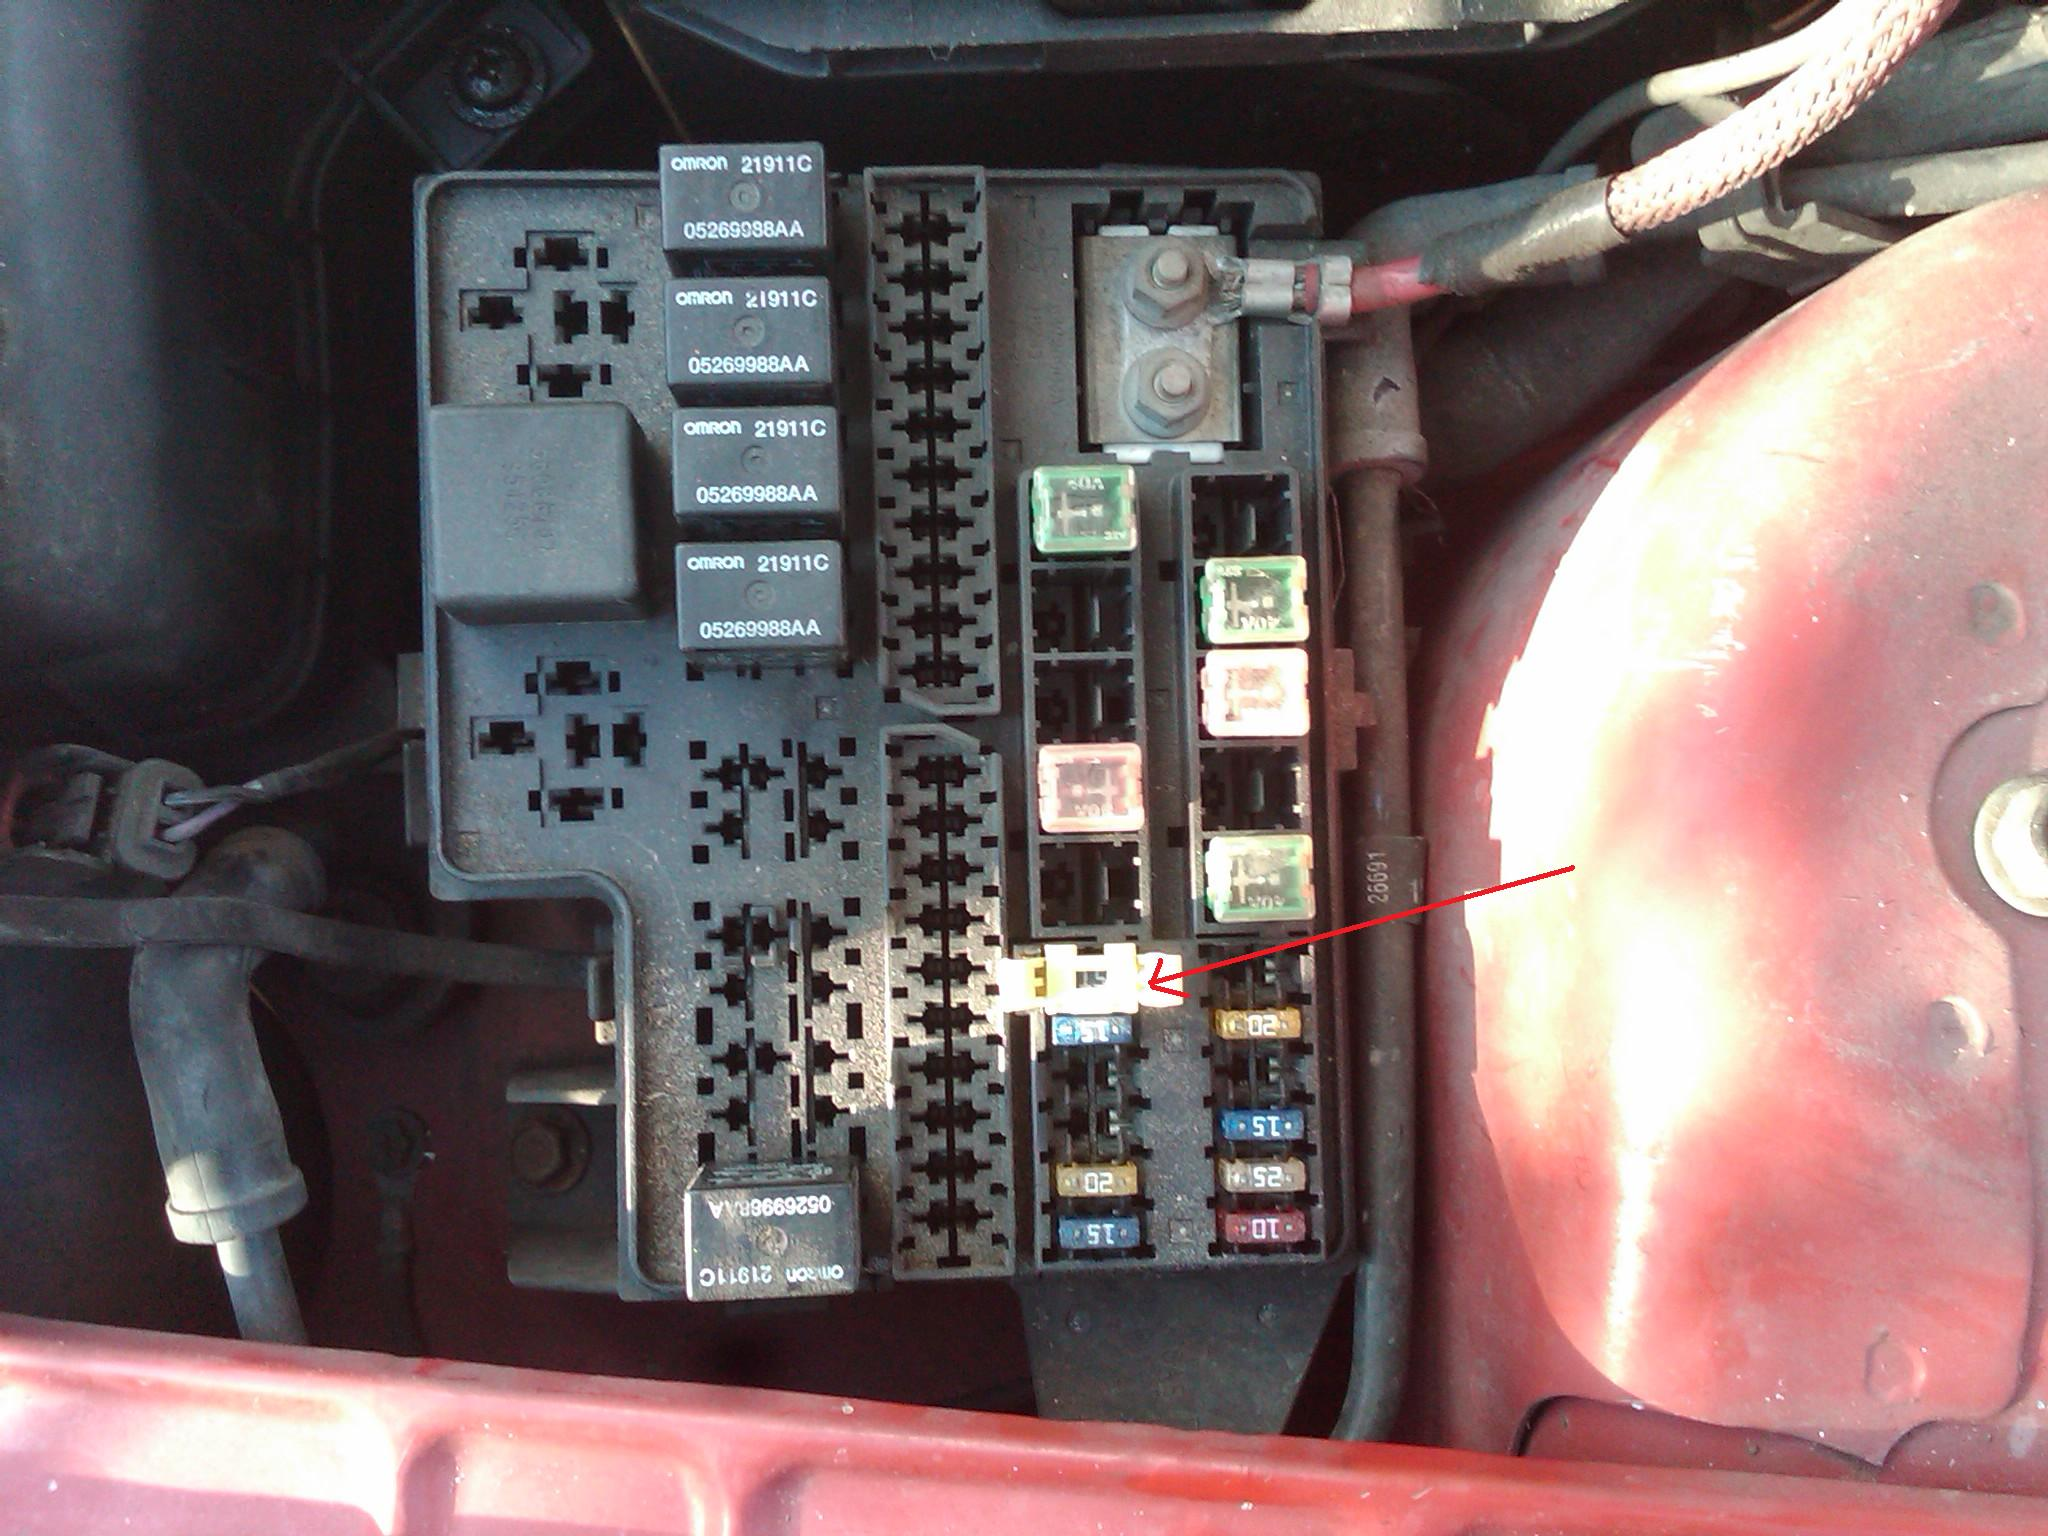 99 Neon Fuse Box Great Design Of Wiring Diagram 95 Engine Dodge 300x300 1996 Get Free Image Aftermarket